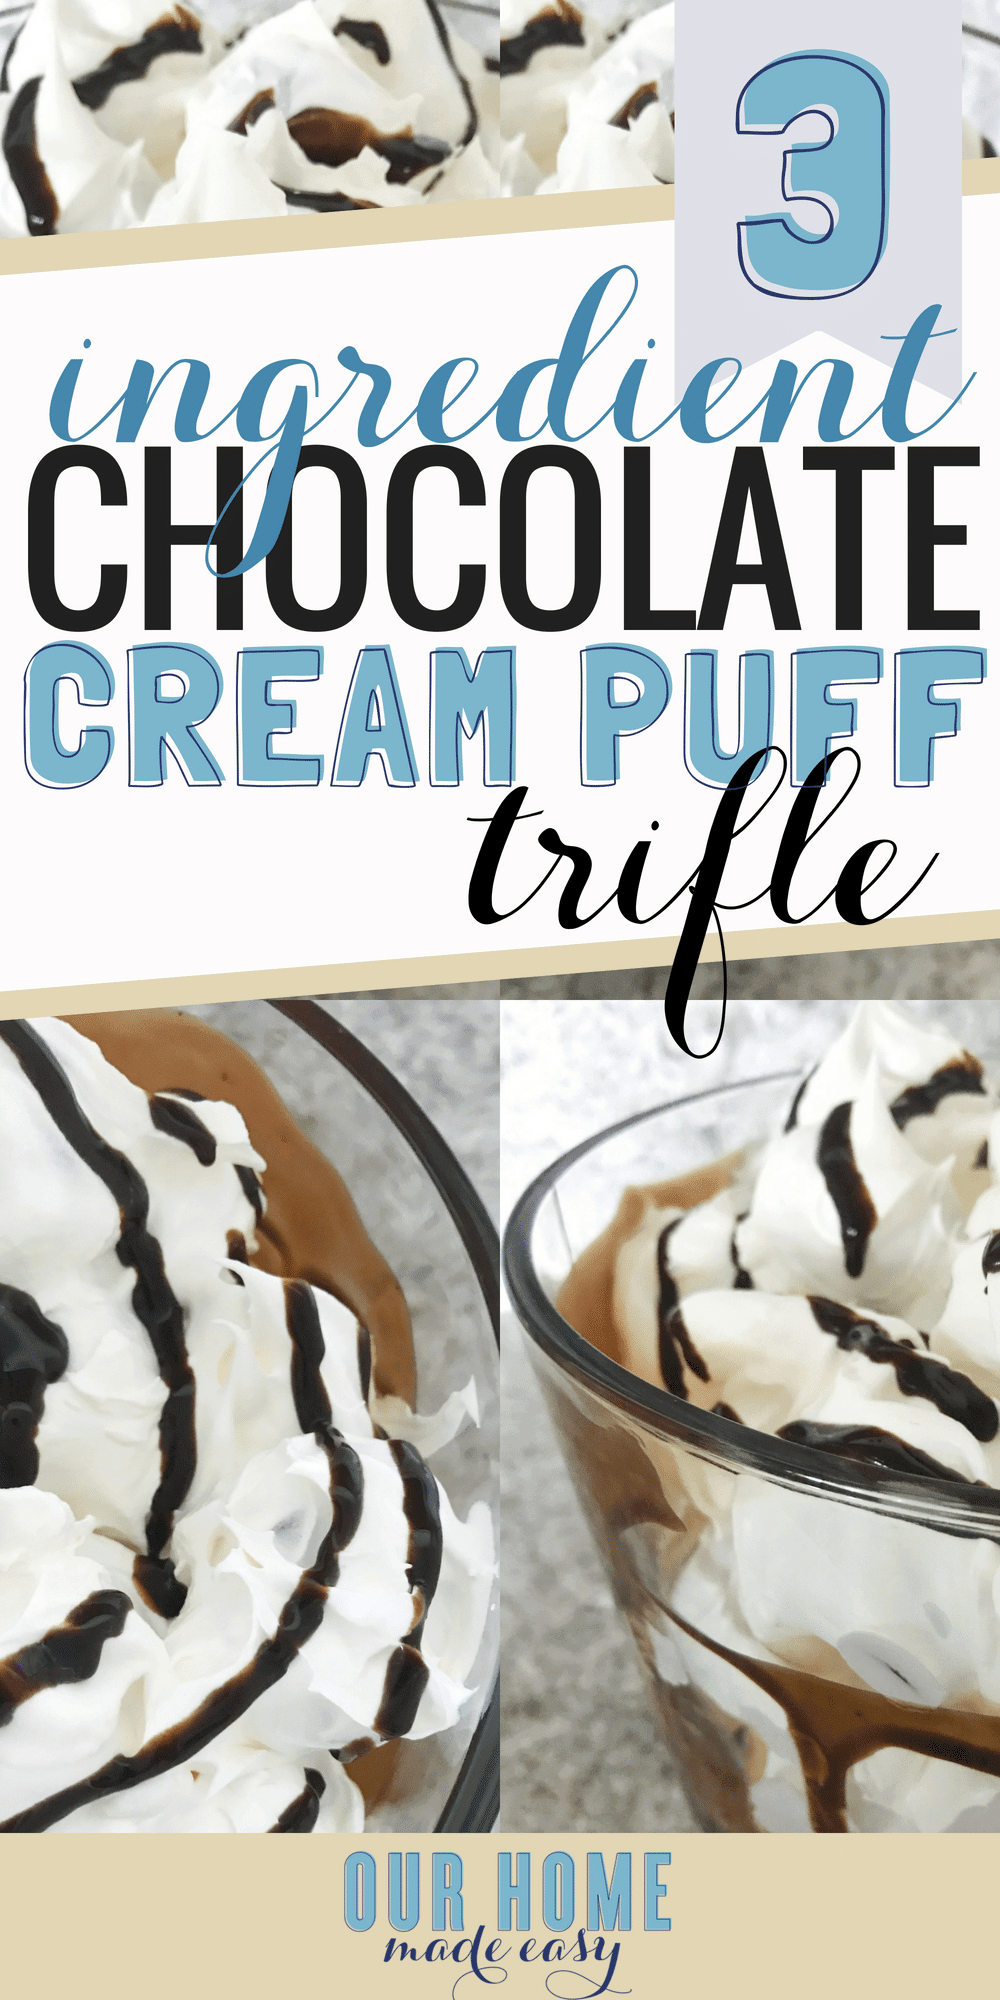 This 3 Ingredient Cream Puff Trifle is an easy no-bake dessert that can be assembled in 10 minutes or less!  #chocolate #dessert #summer #trifle